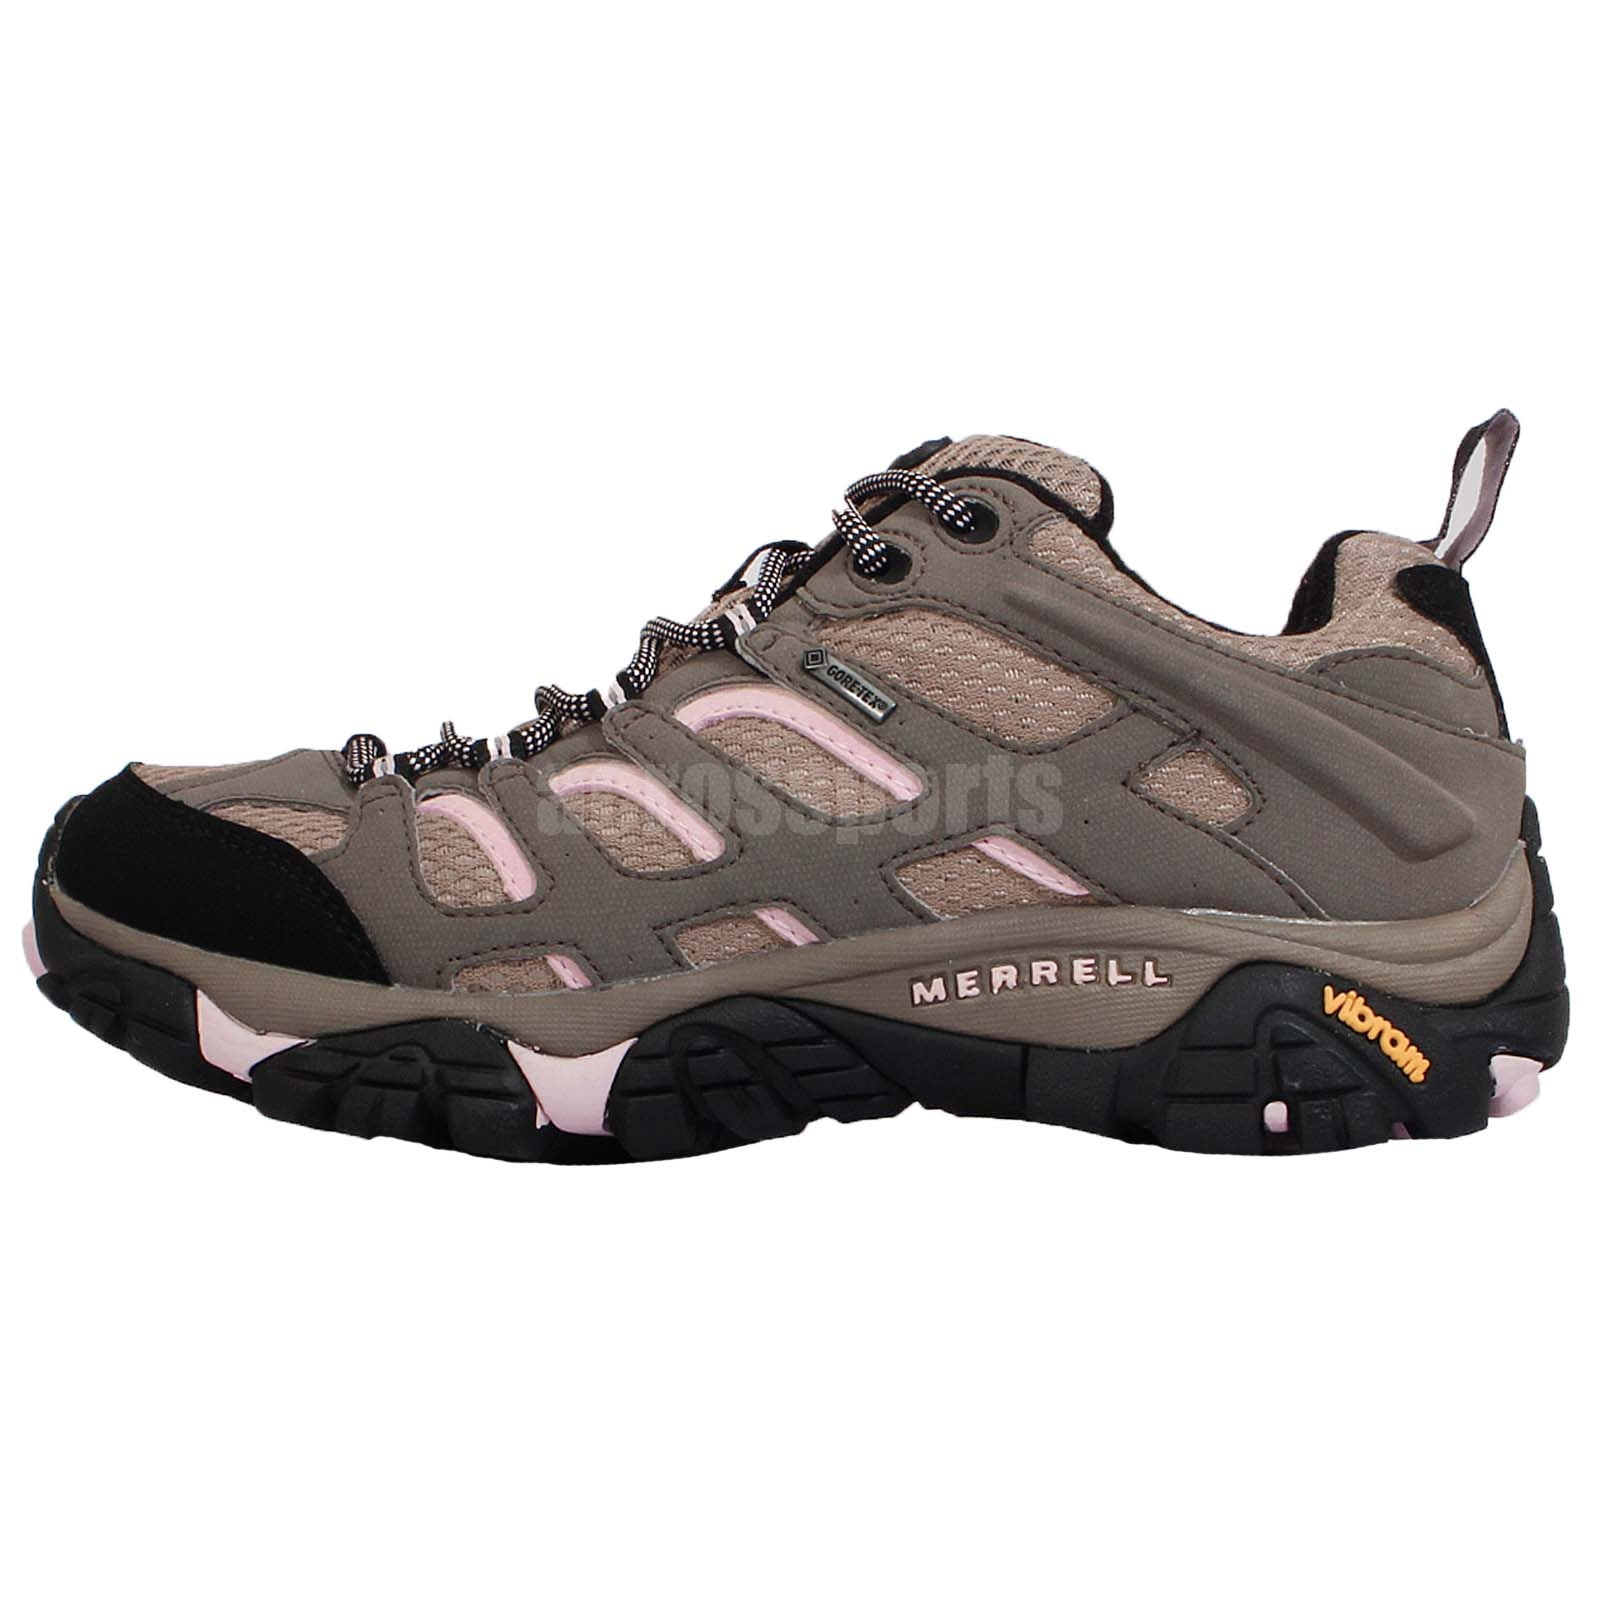 merrell moab tex grey pink womens outdoors hiking